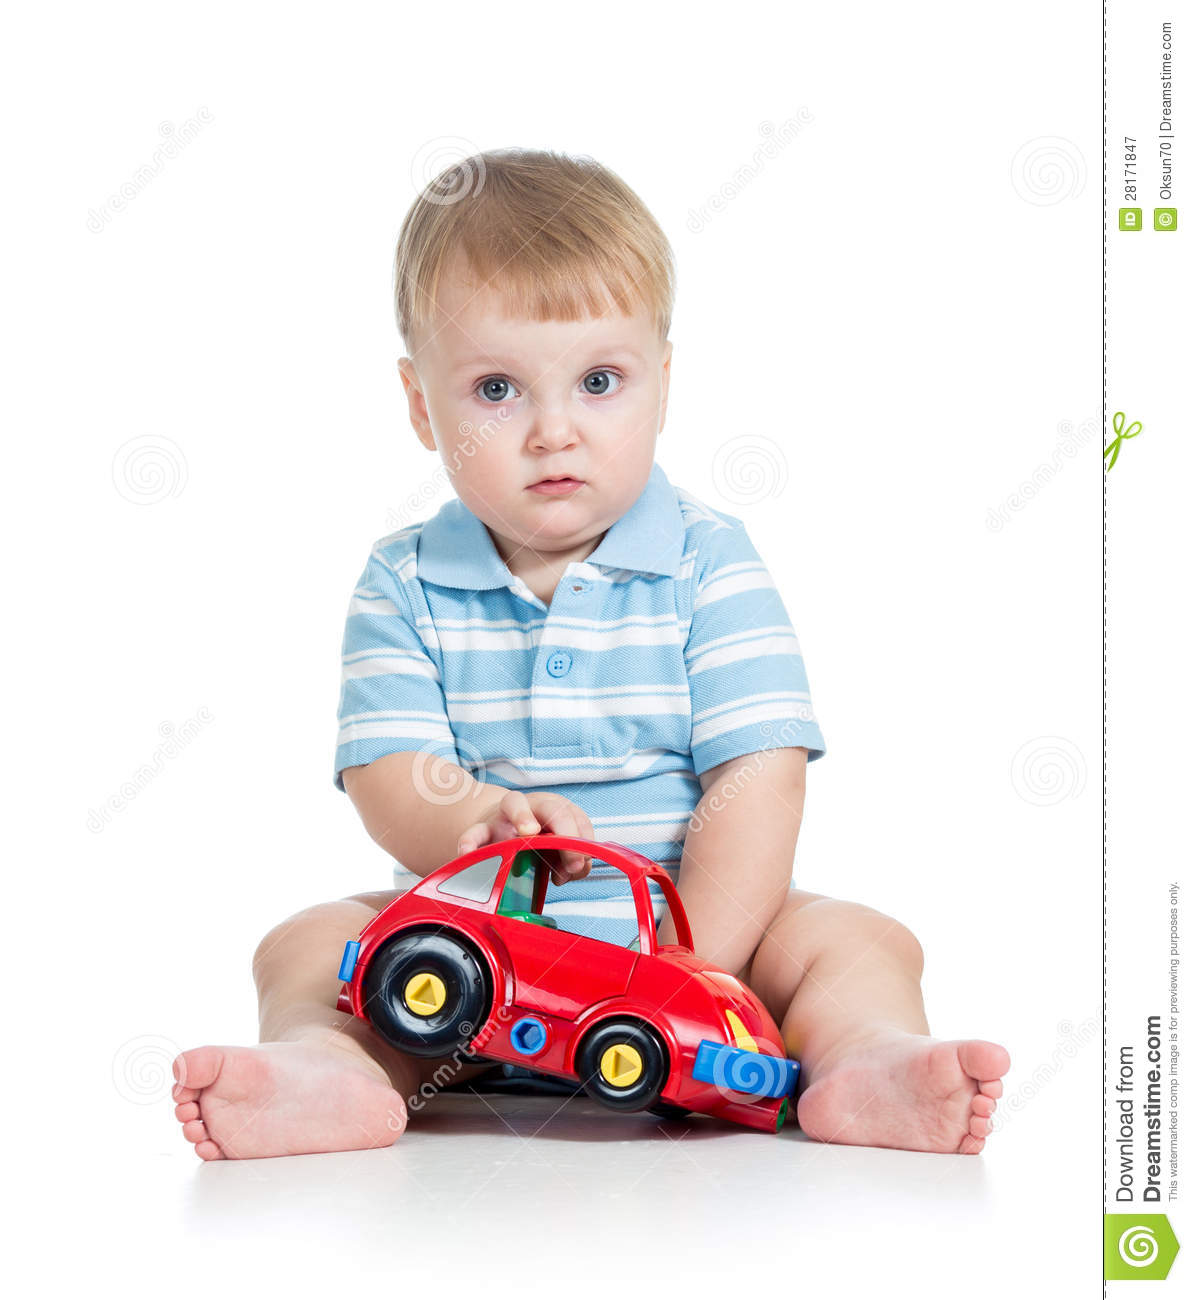 Baby Boy Toy Cars : Baby boy playing with toy car royalty free stock